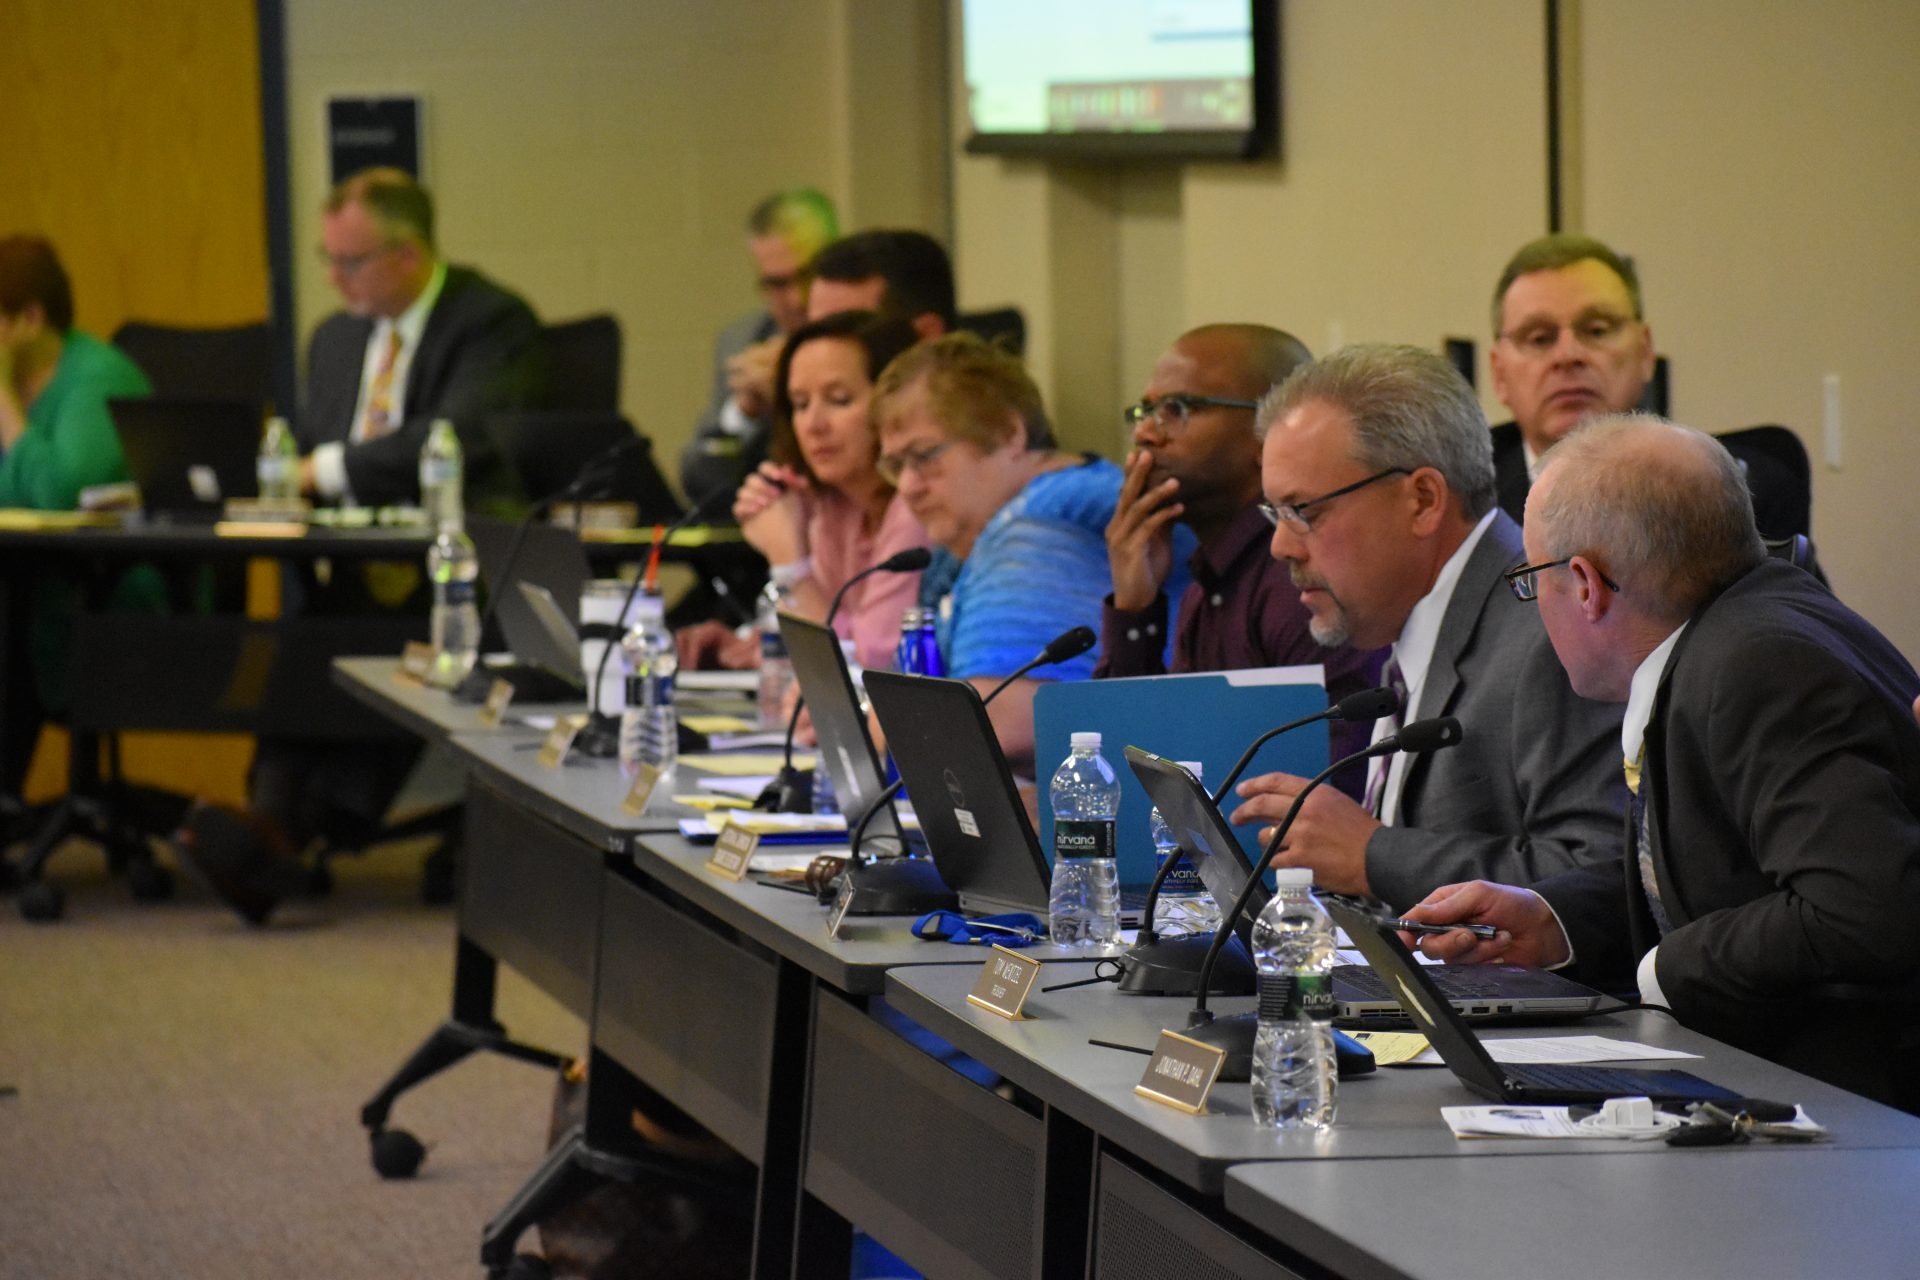 Members of the Eastern Lancaster County school board voted on a new student privacy policy on April 15, 2019.